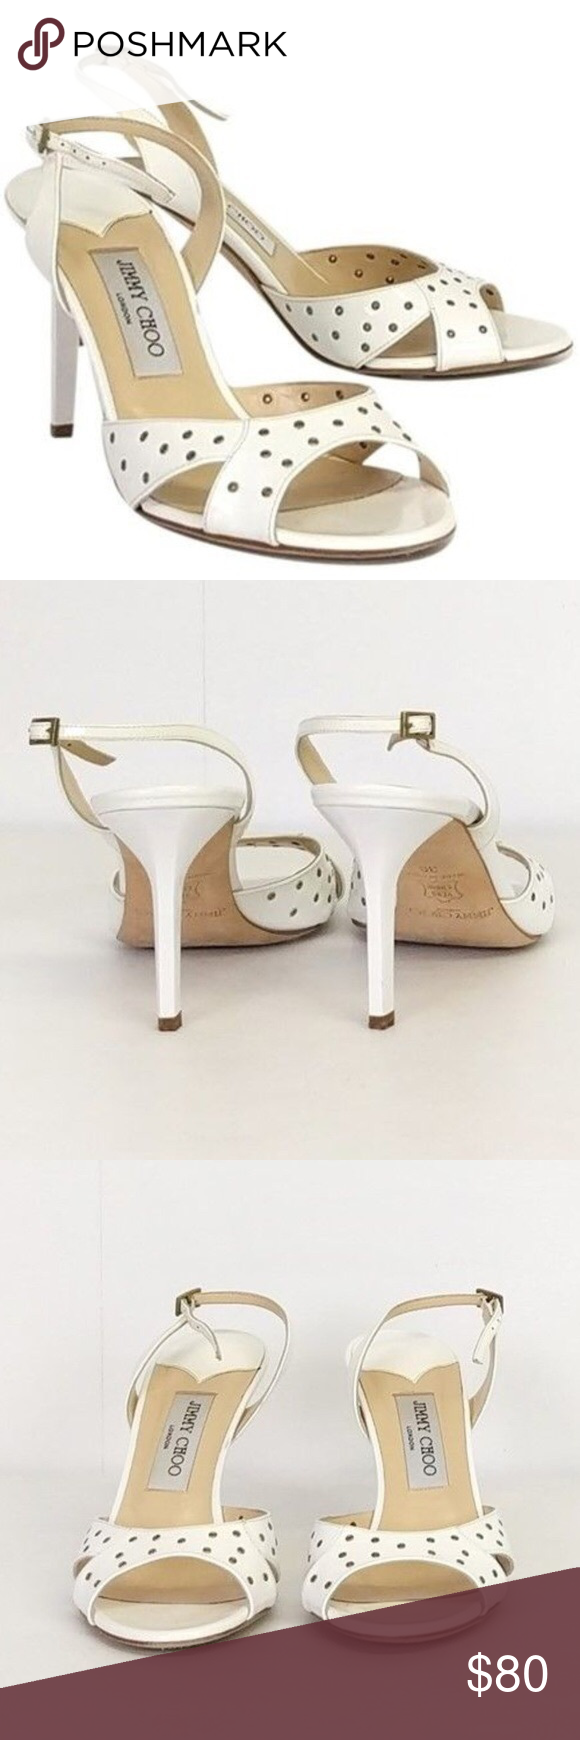 0dbc71a3f08 Jommy choo white leather heels Jommy choo white leather heels size eu 41  Jimmy Choo Shoes Heels